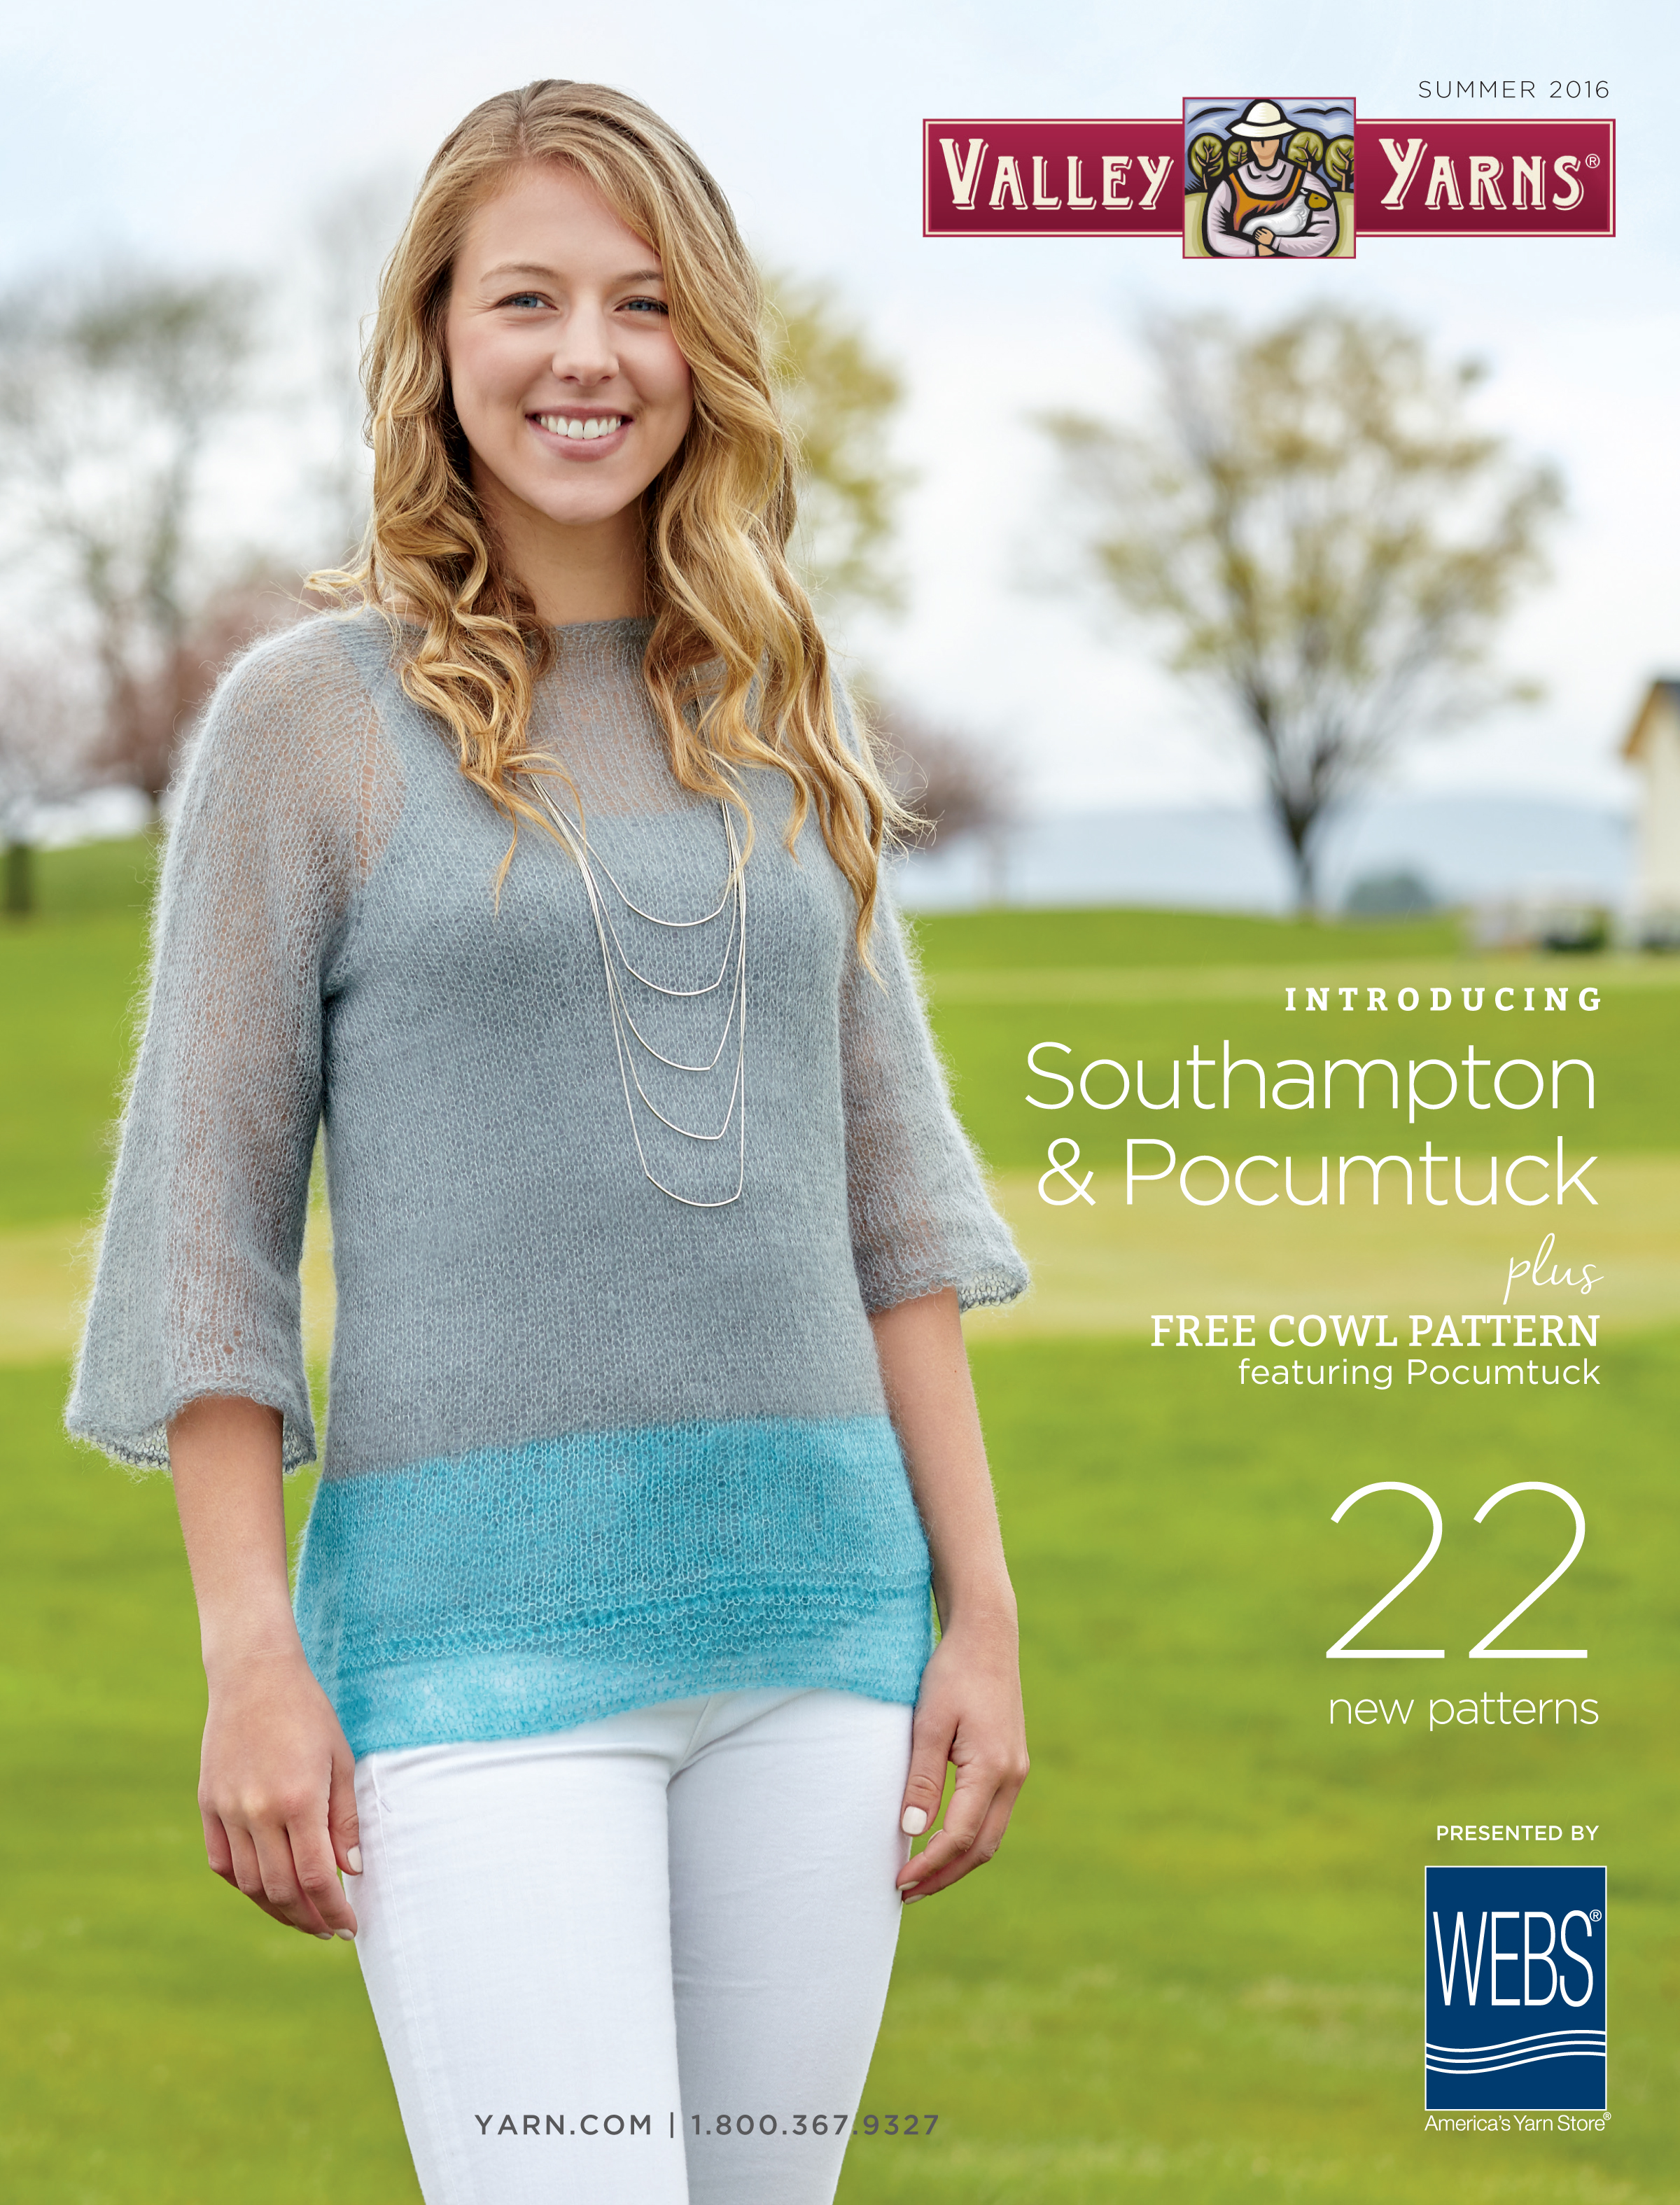 Valley Yarns Summer 2016 Catalog - available to view online now! Read more on the WEBS Blog at blog.yarn.com